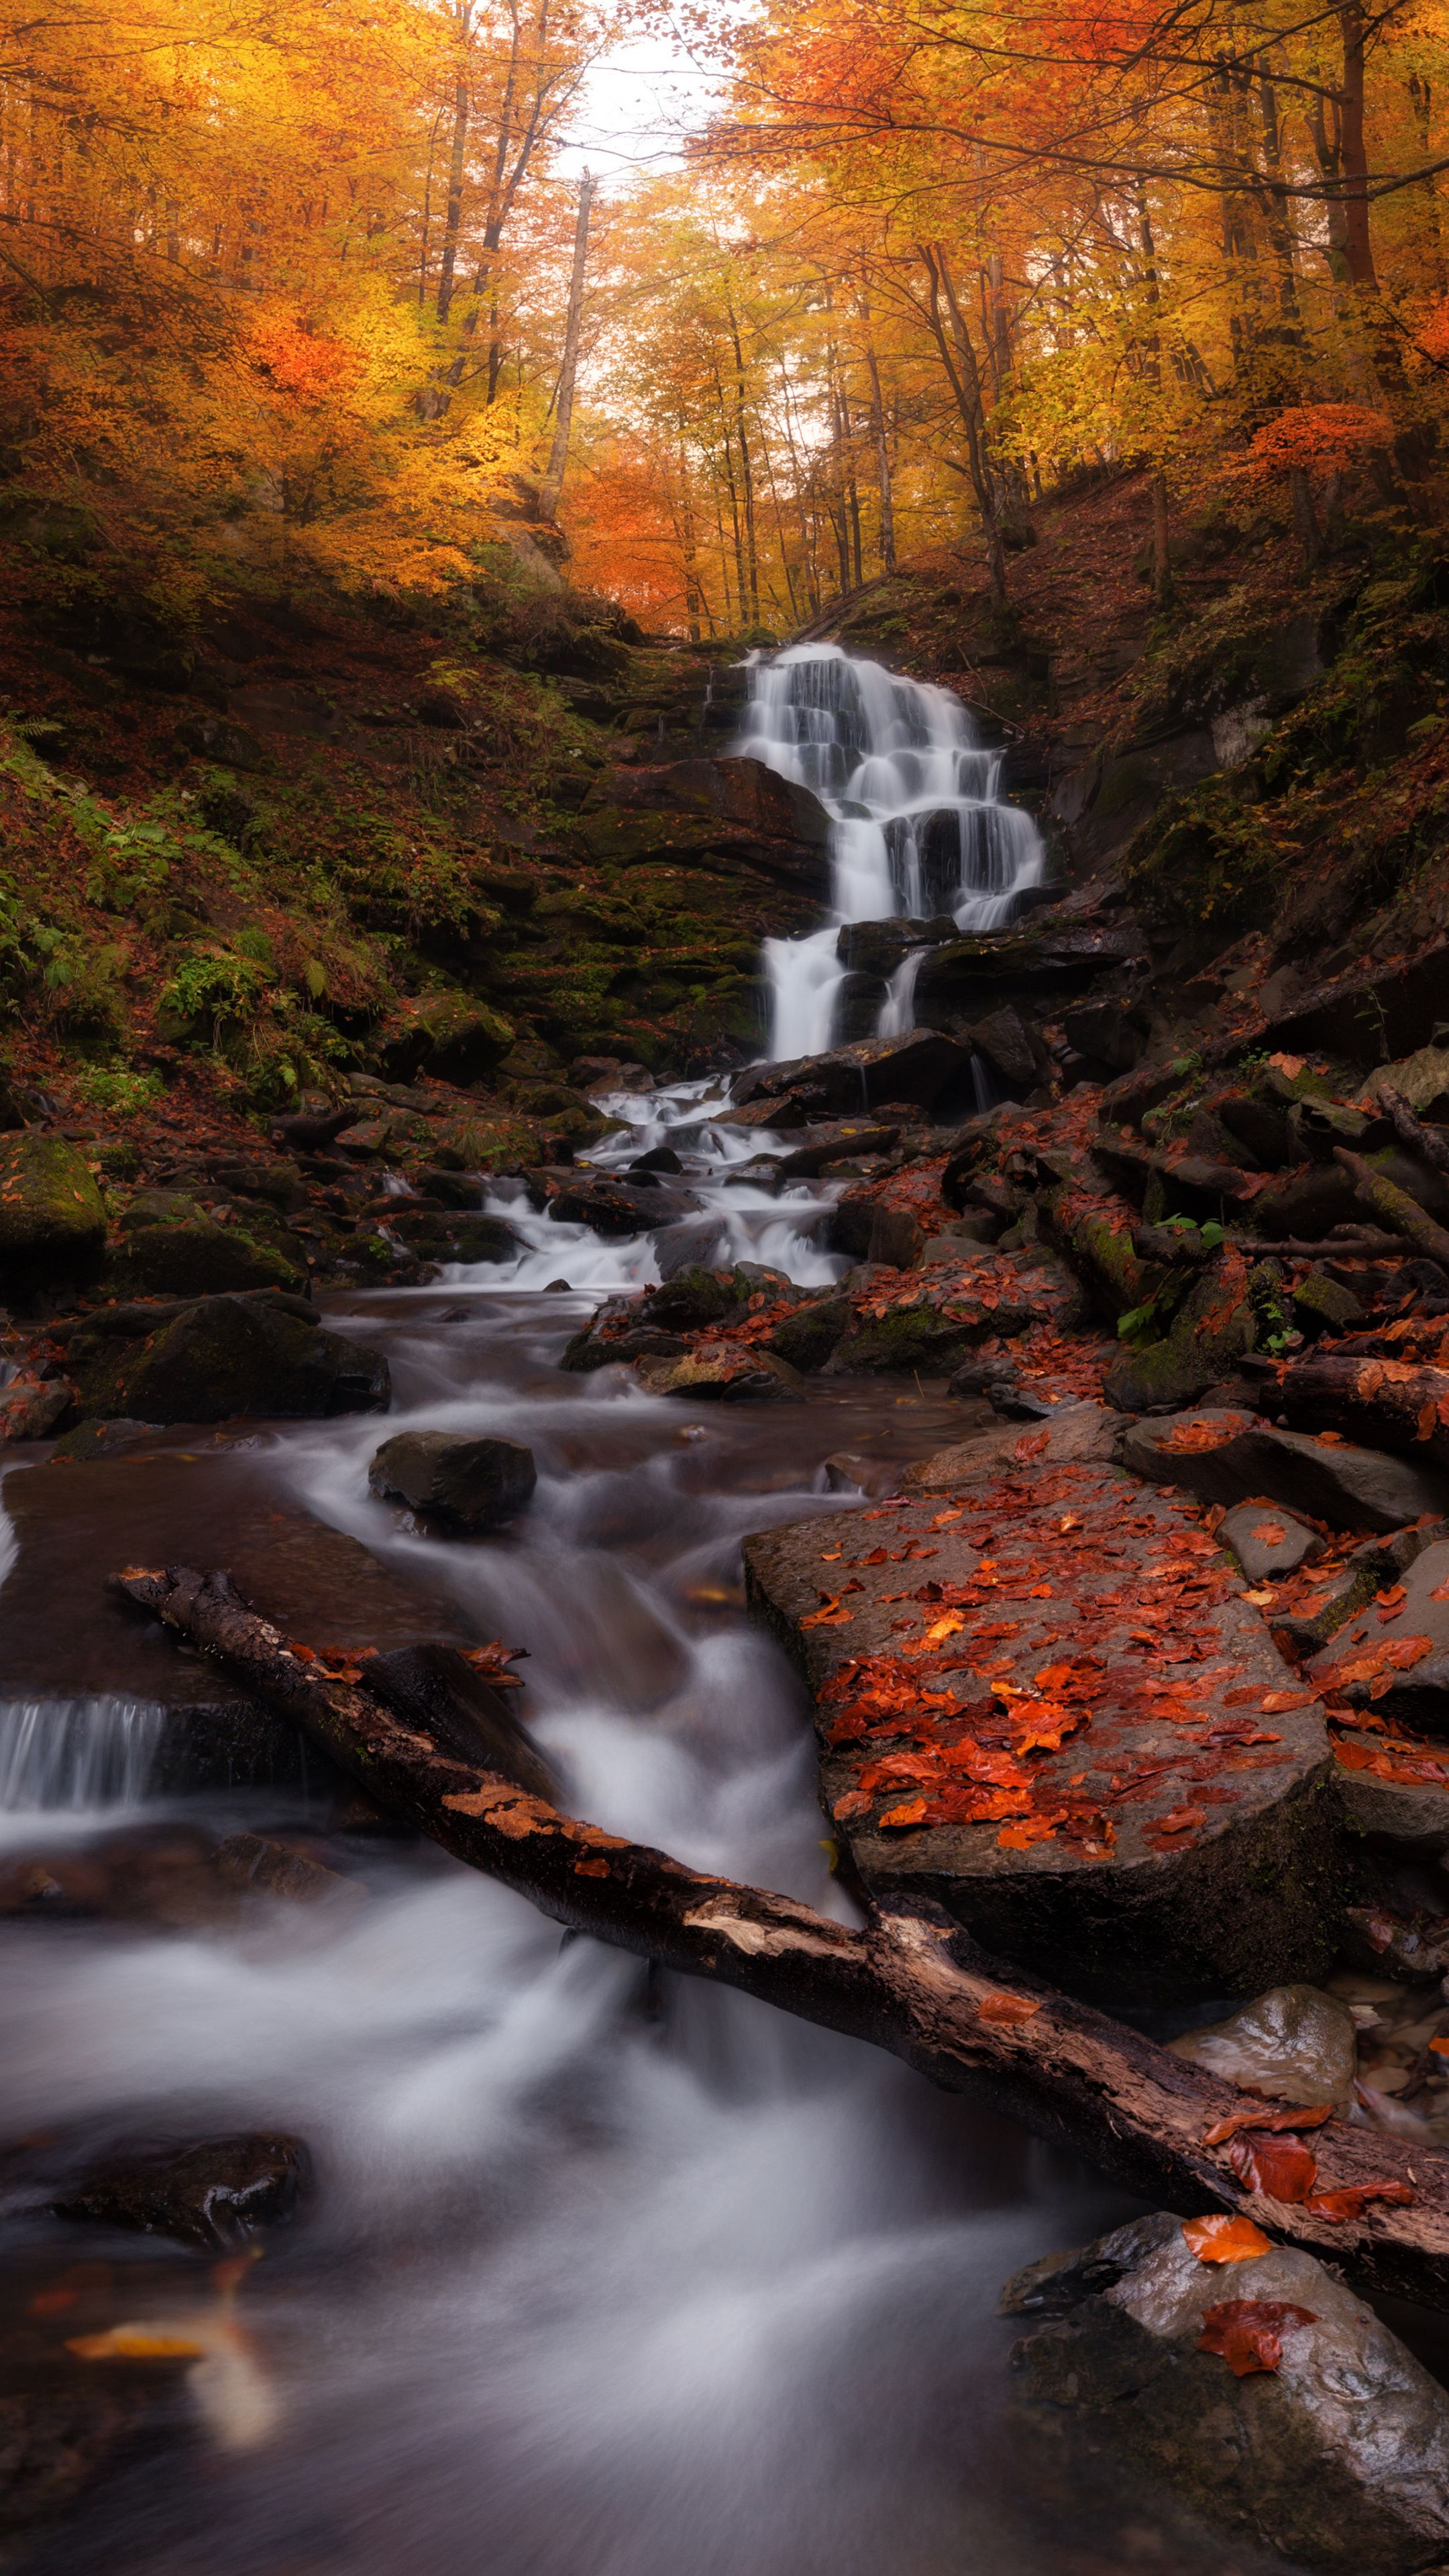 2160x3840 Autumn Forest Water Current Waterfall Nature Wallpaper Autumn Forest Forest Waterfall Waterfall